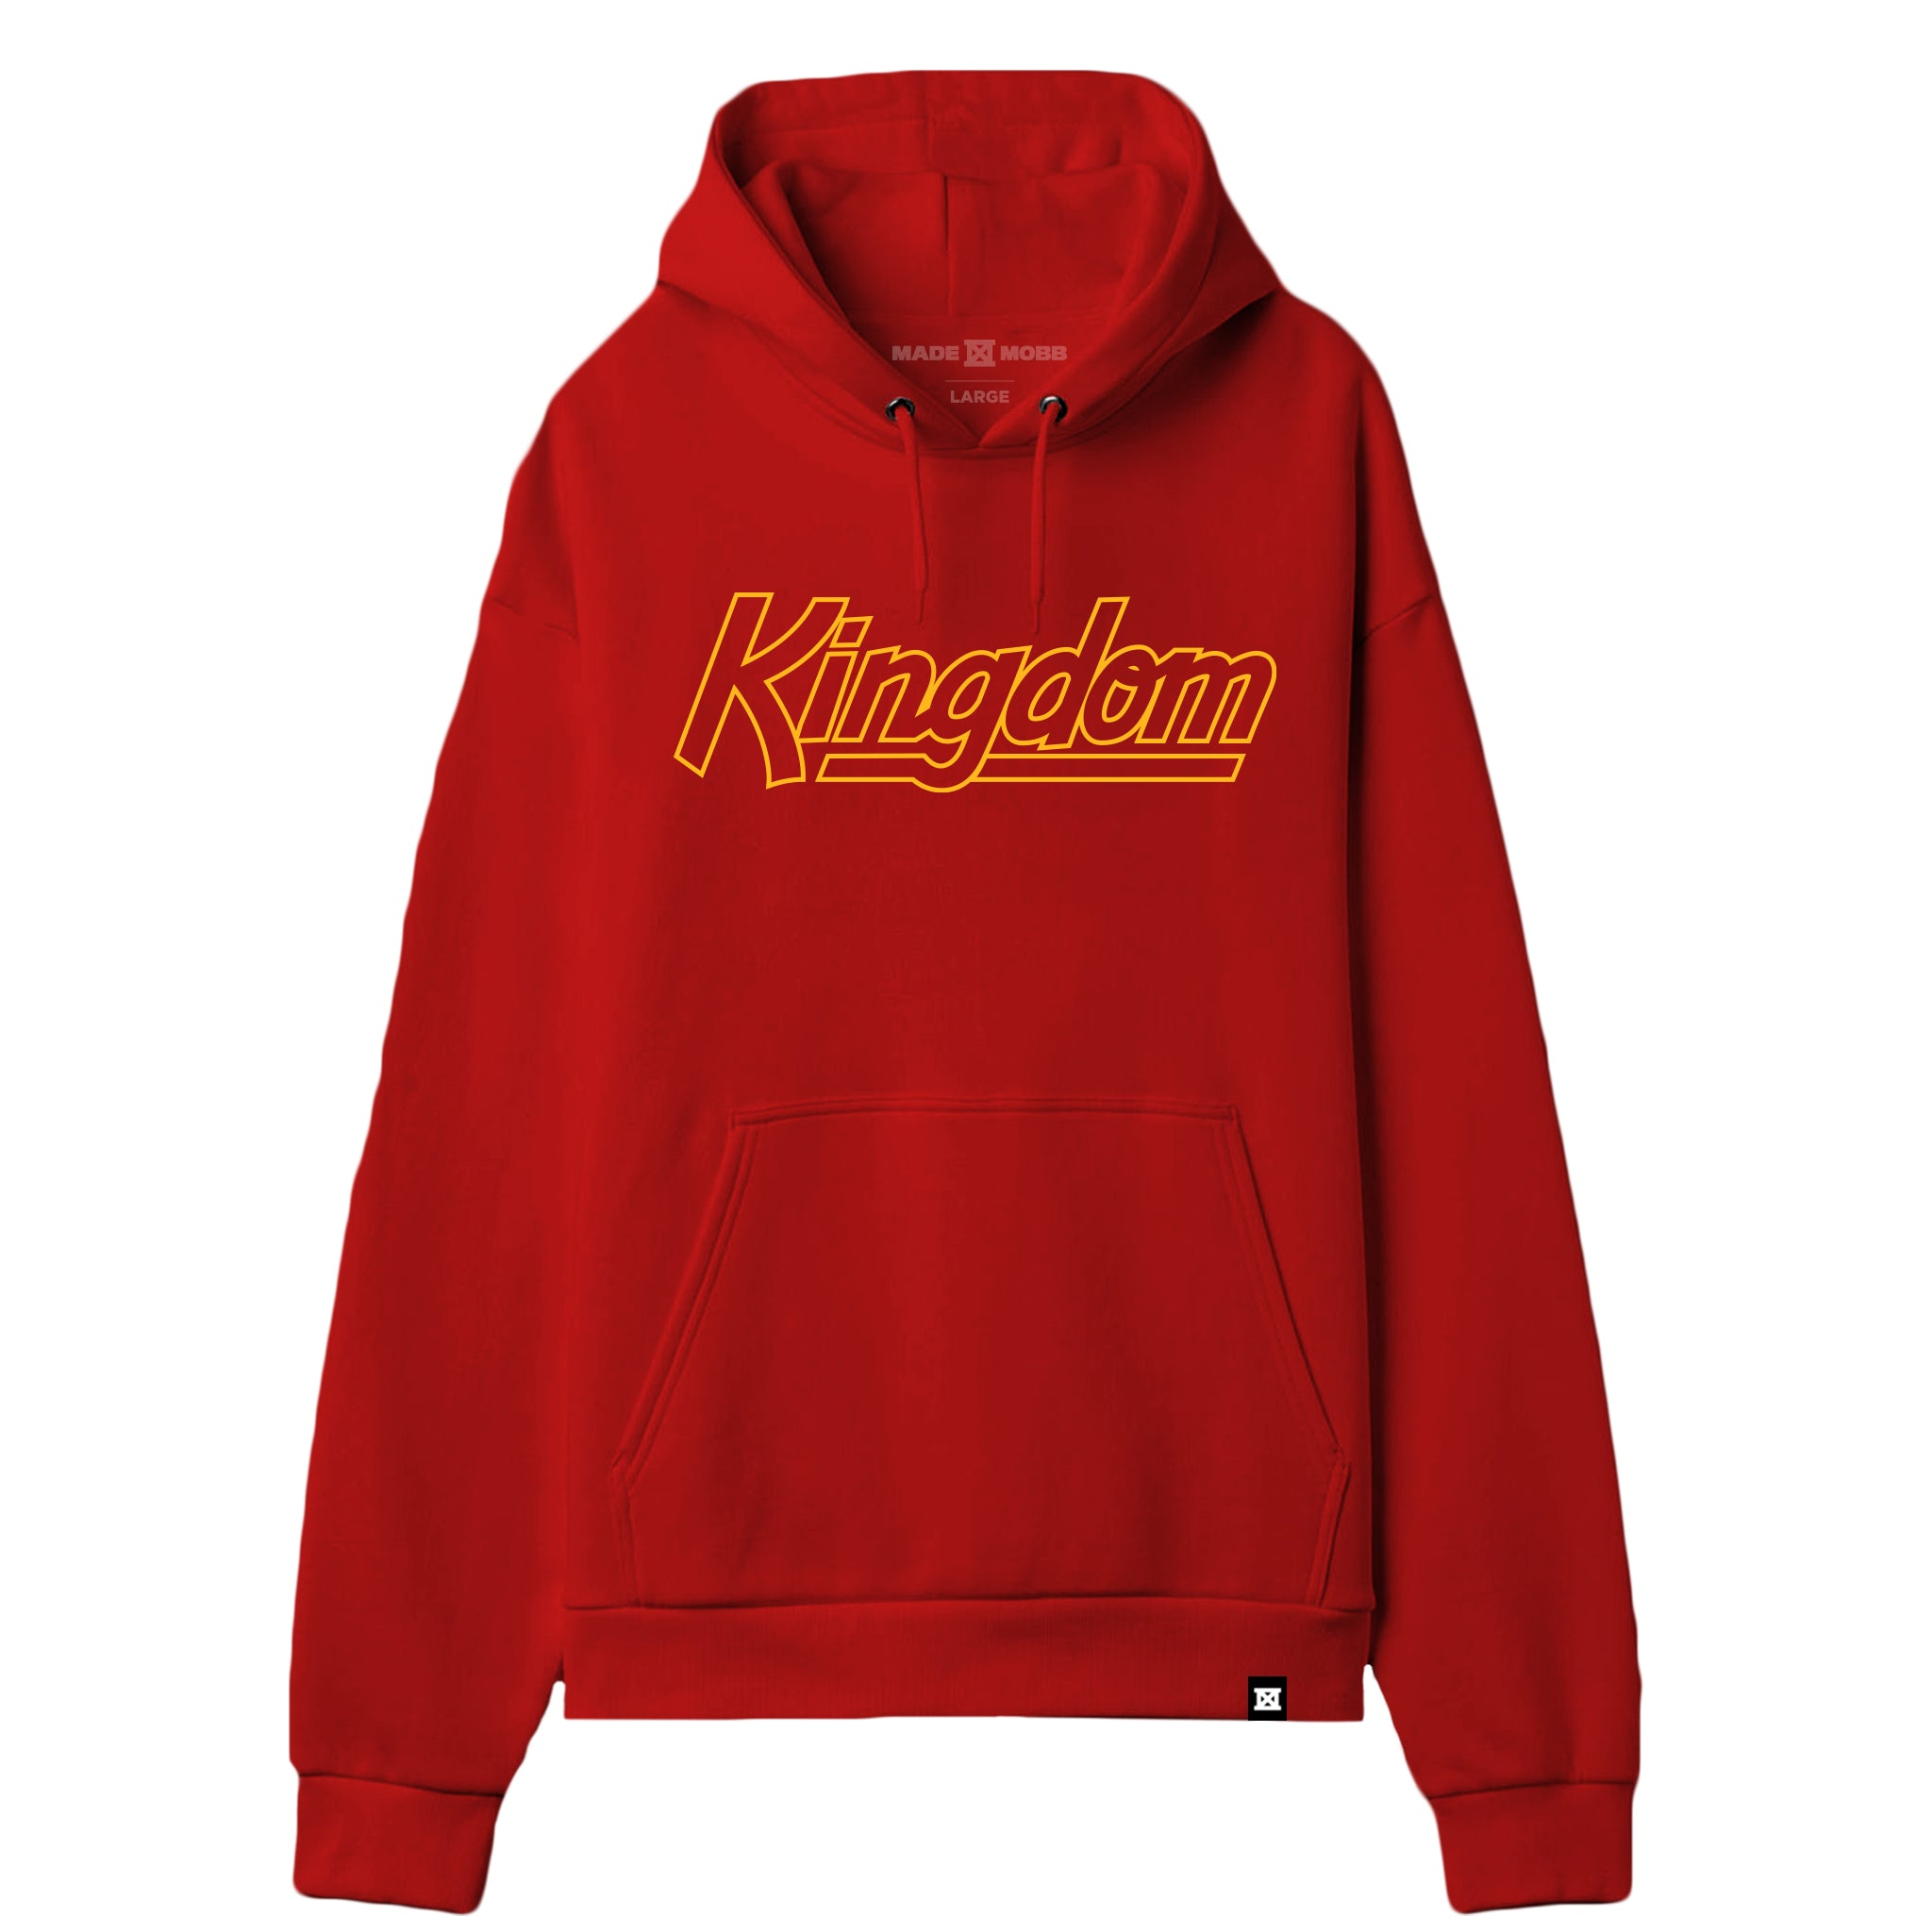 KINGDOM Hoodie - Red / Yellow